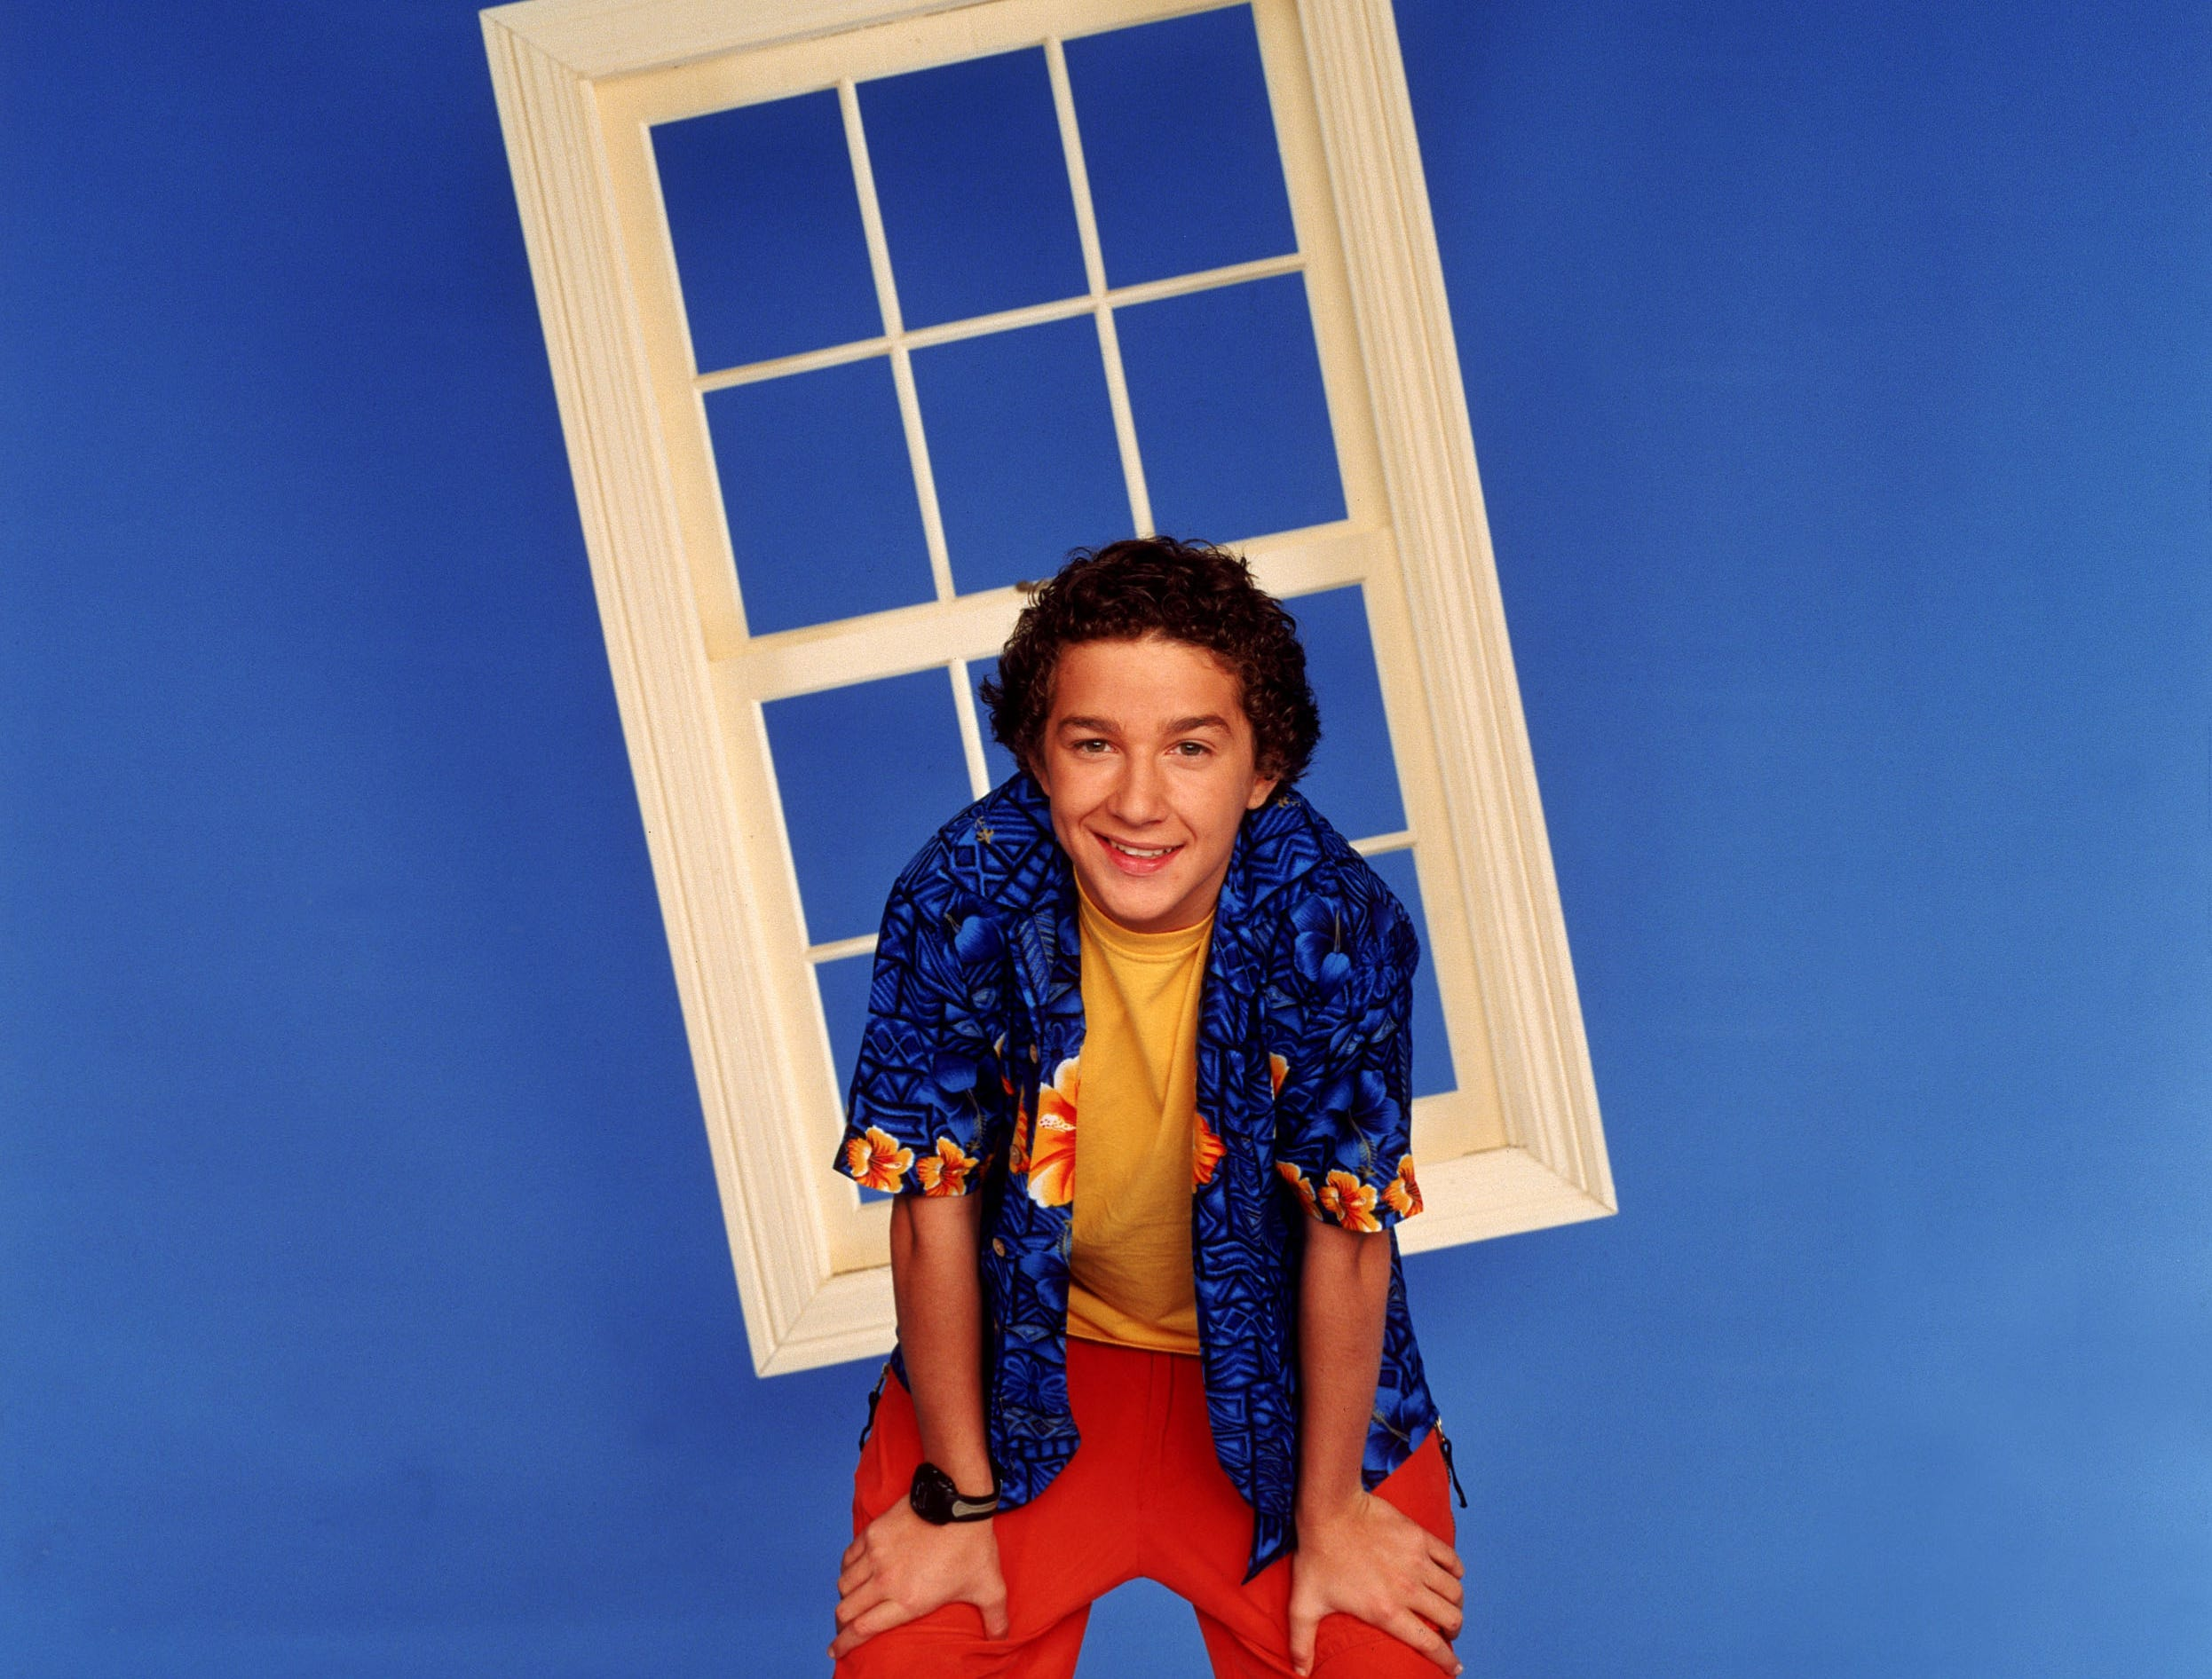 Shia LaBeouf appears on the television program Even Stevens. --- DATE TAKEN: rcd 04/03  No Byline   Disney Channel        HO      - handout ORG XMIT: PX94298